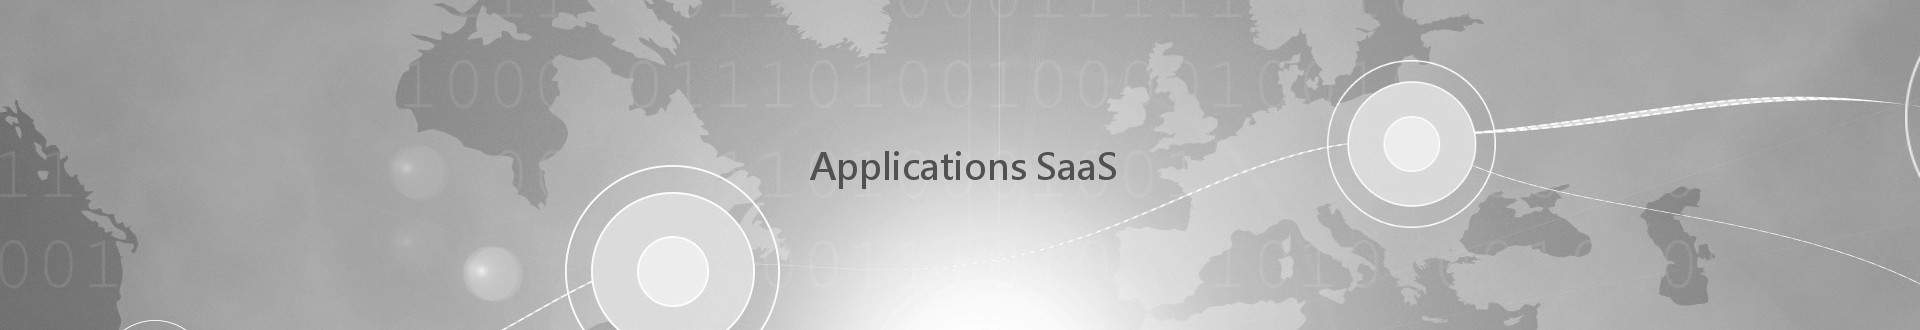 Développement d'applications Saas